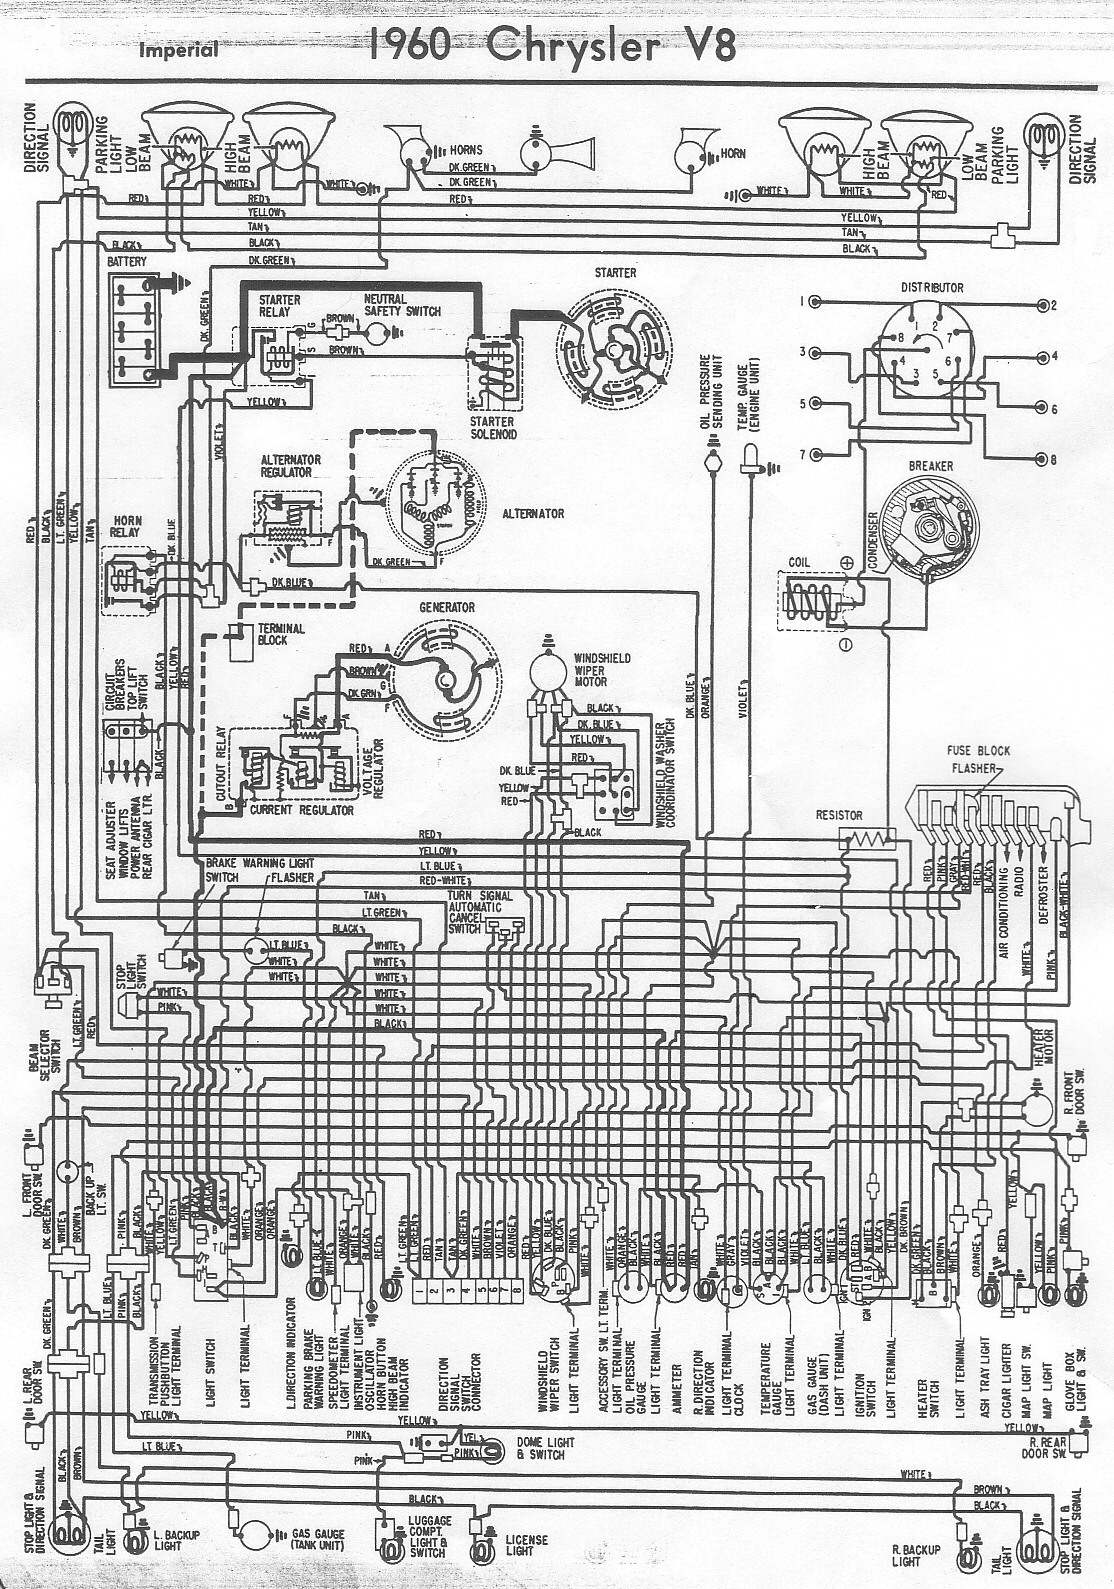 [DIAGRAM_38DE]  1991 Chrysler Imperial Wiring Diagram Diagram Base Website Wiring Diagram -  VENNDIAGRAMPLOTTER.ROUNDABIKE.IT | Imperial Wiring Diagrams |  | Diagram Base Website Full Edition - roundabike